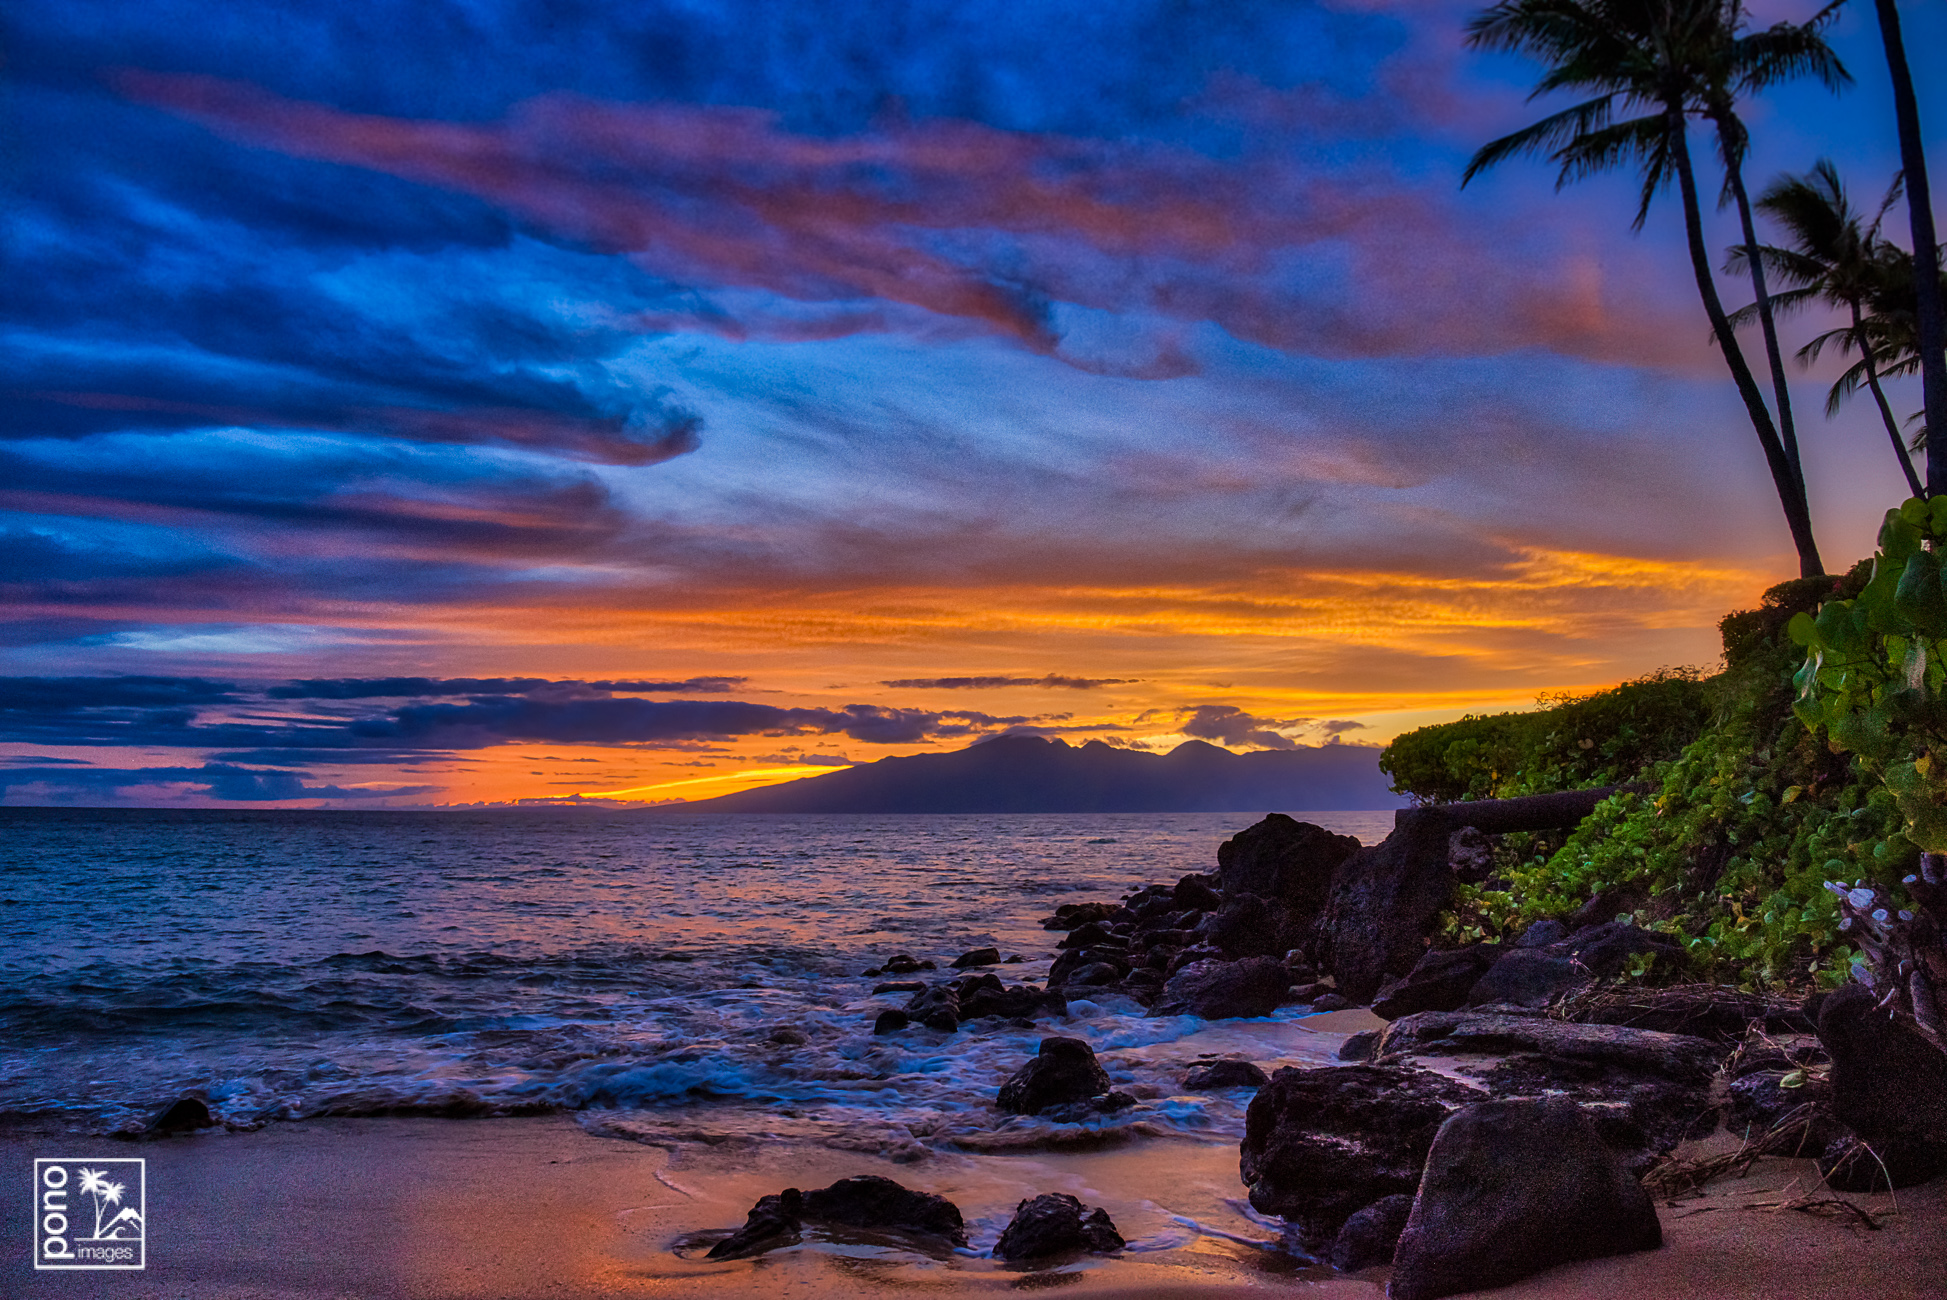 West Maui Sunset Glow by Pono Images